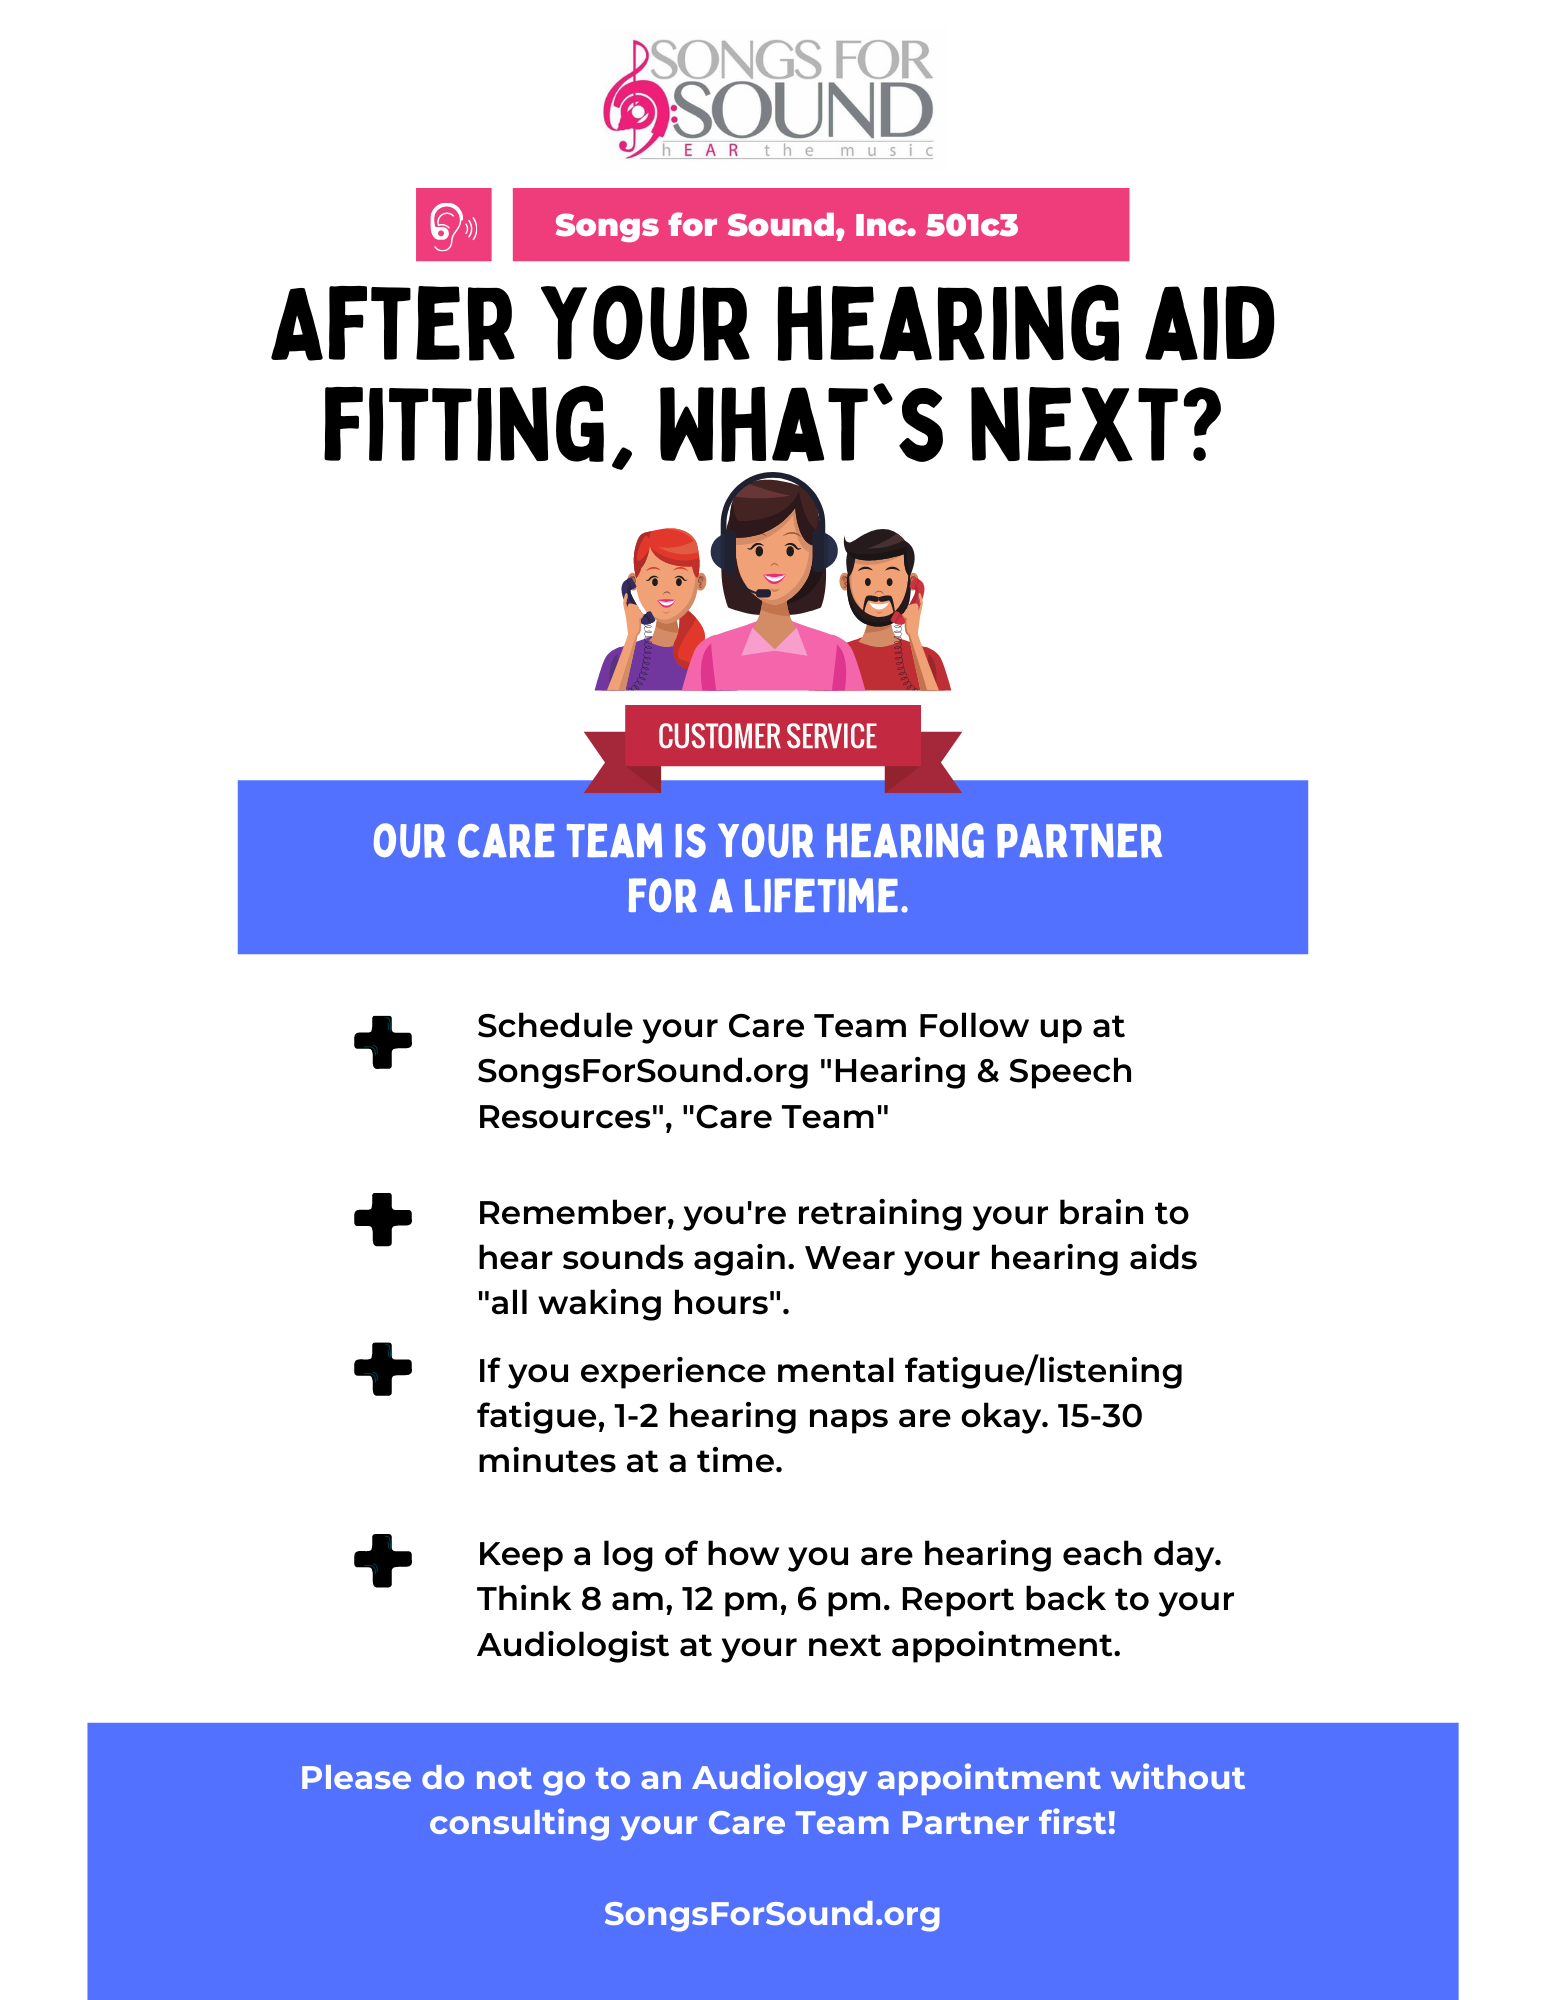 Care Team Support: After My Hearing Aid Fitting